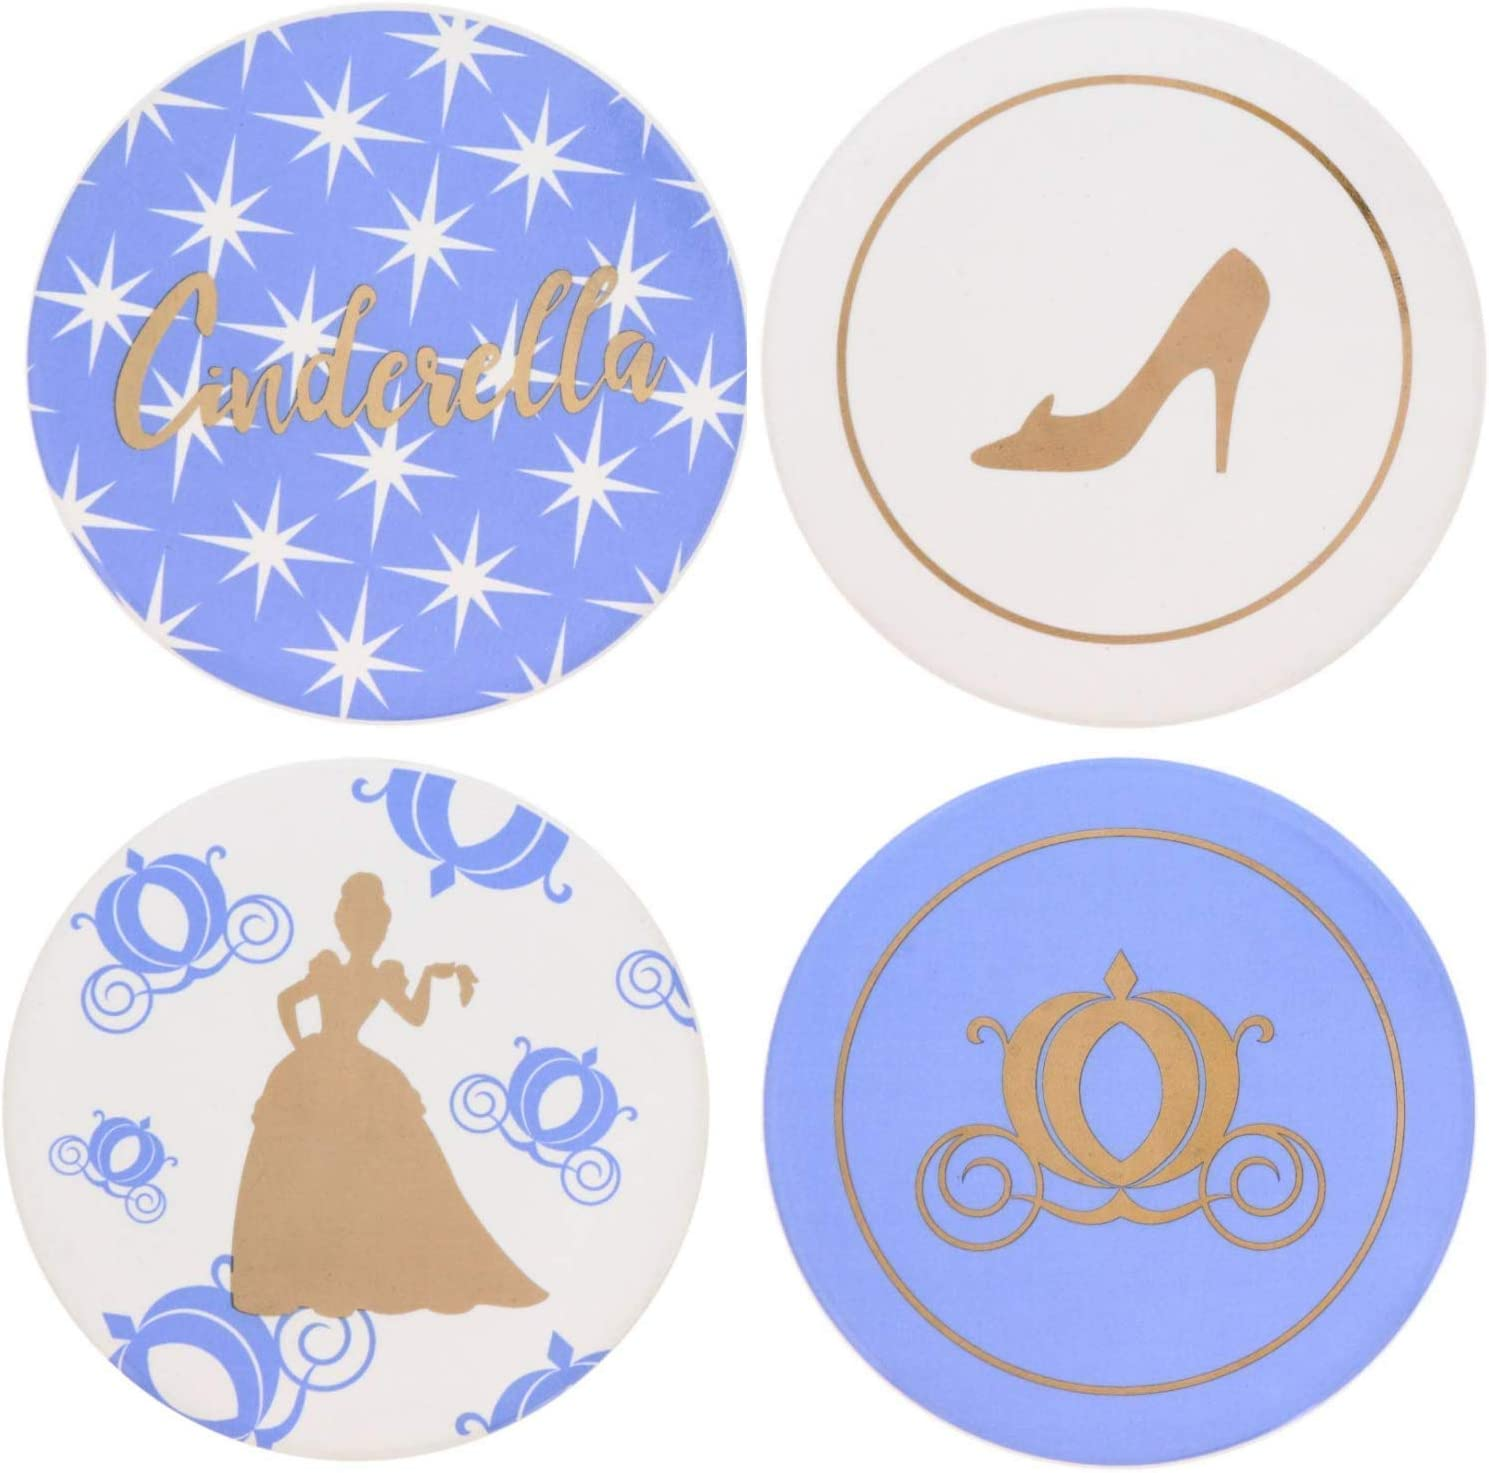 Cinderella Themed Coaster Set with 4 Unique Designs - Ceramic Coasters that Make Beautiful Home Accessories to Protect Tables from Drink Marks, Water Rings, and Scratches, 4 Piece Heavy Coasters